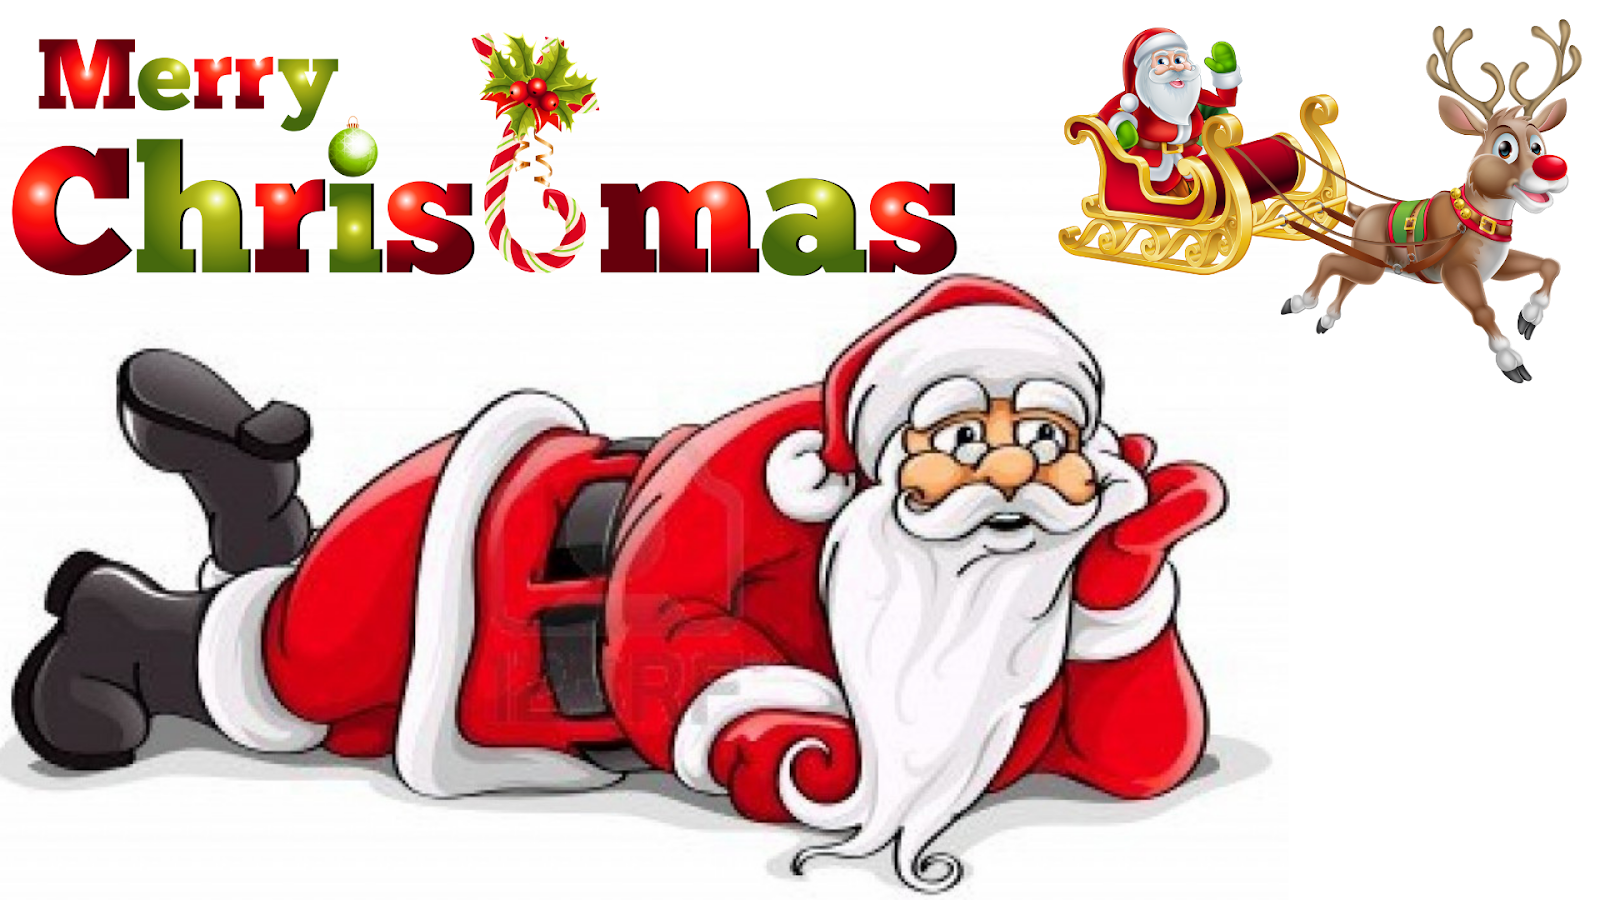 Merry Christmas Wishes Quotes in WhatsApp, Facebook, Twitter ...